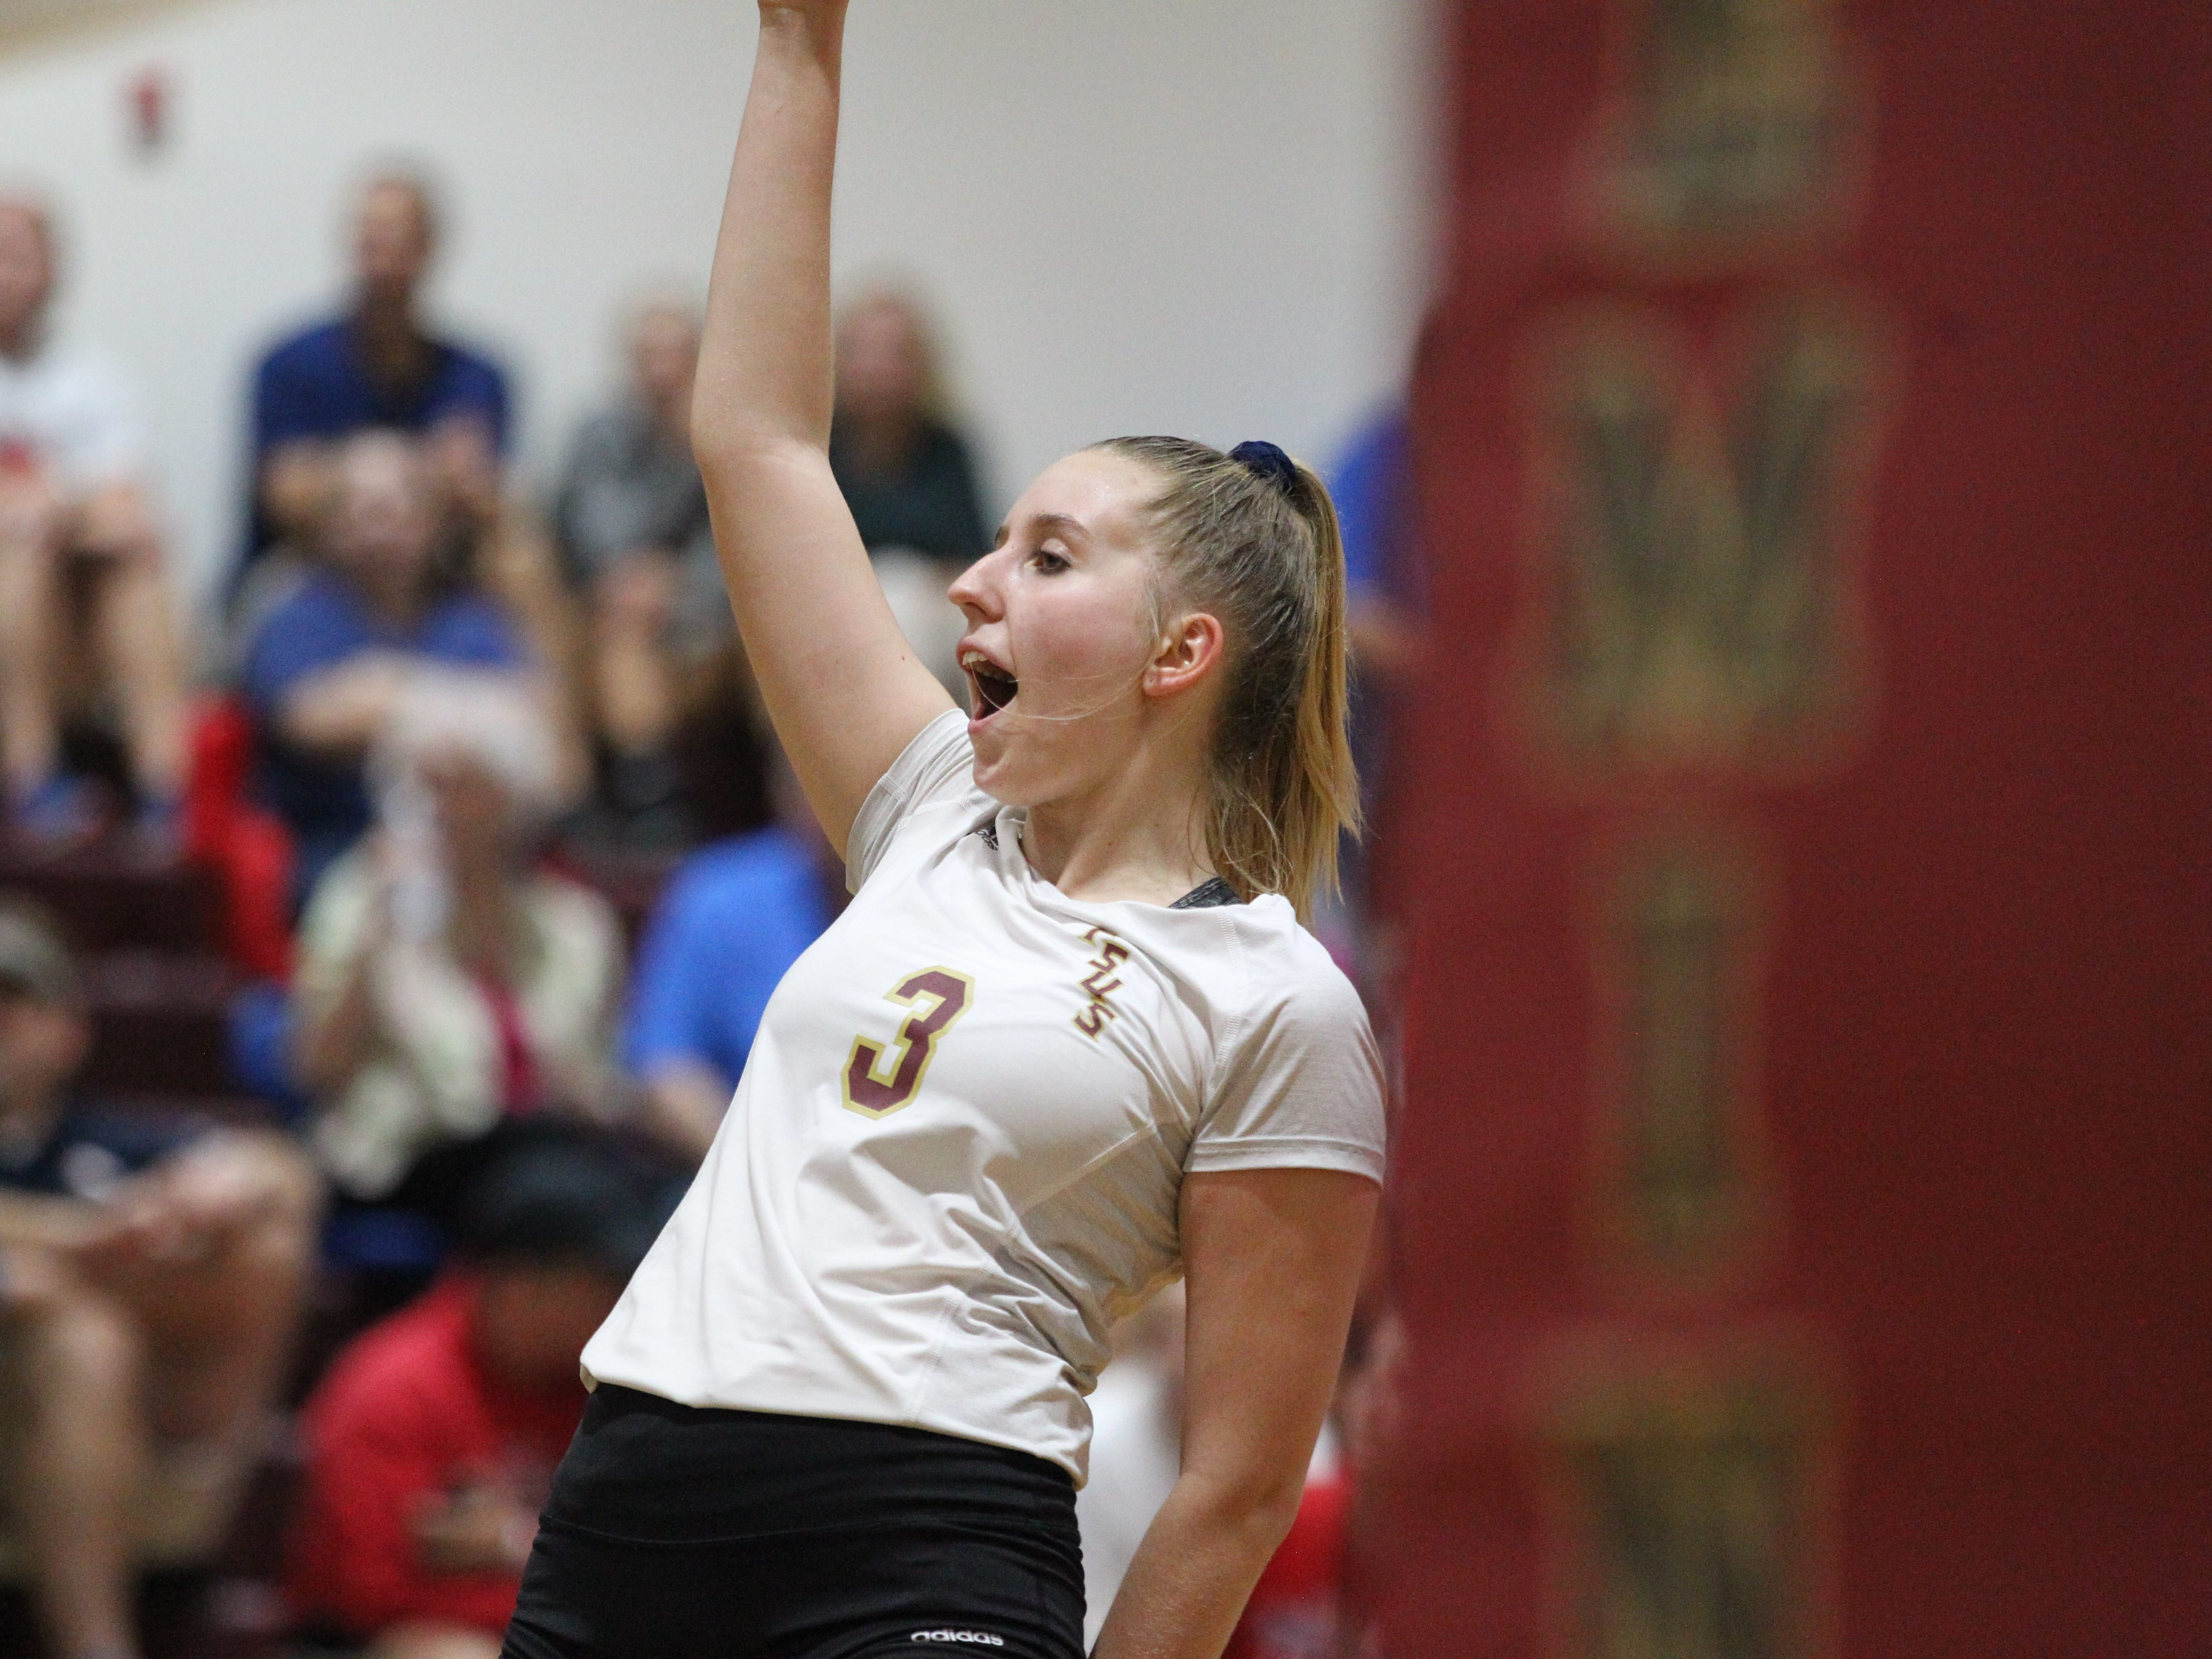 Florida High junior setter Carlee Allbaugh celebrates a point during the Seminoles' 3-2 win over Wakulla on Thursday.